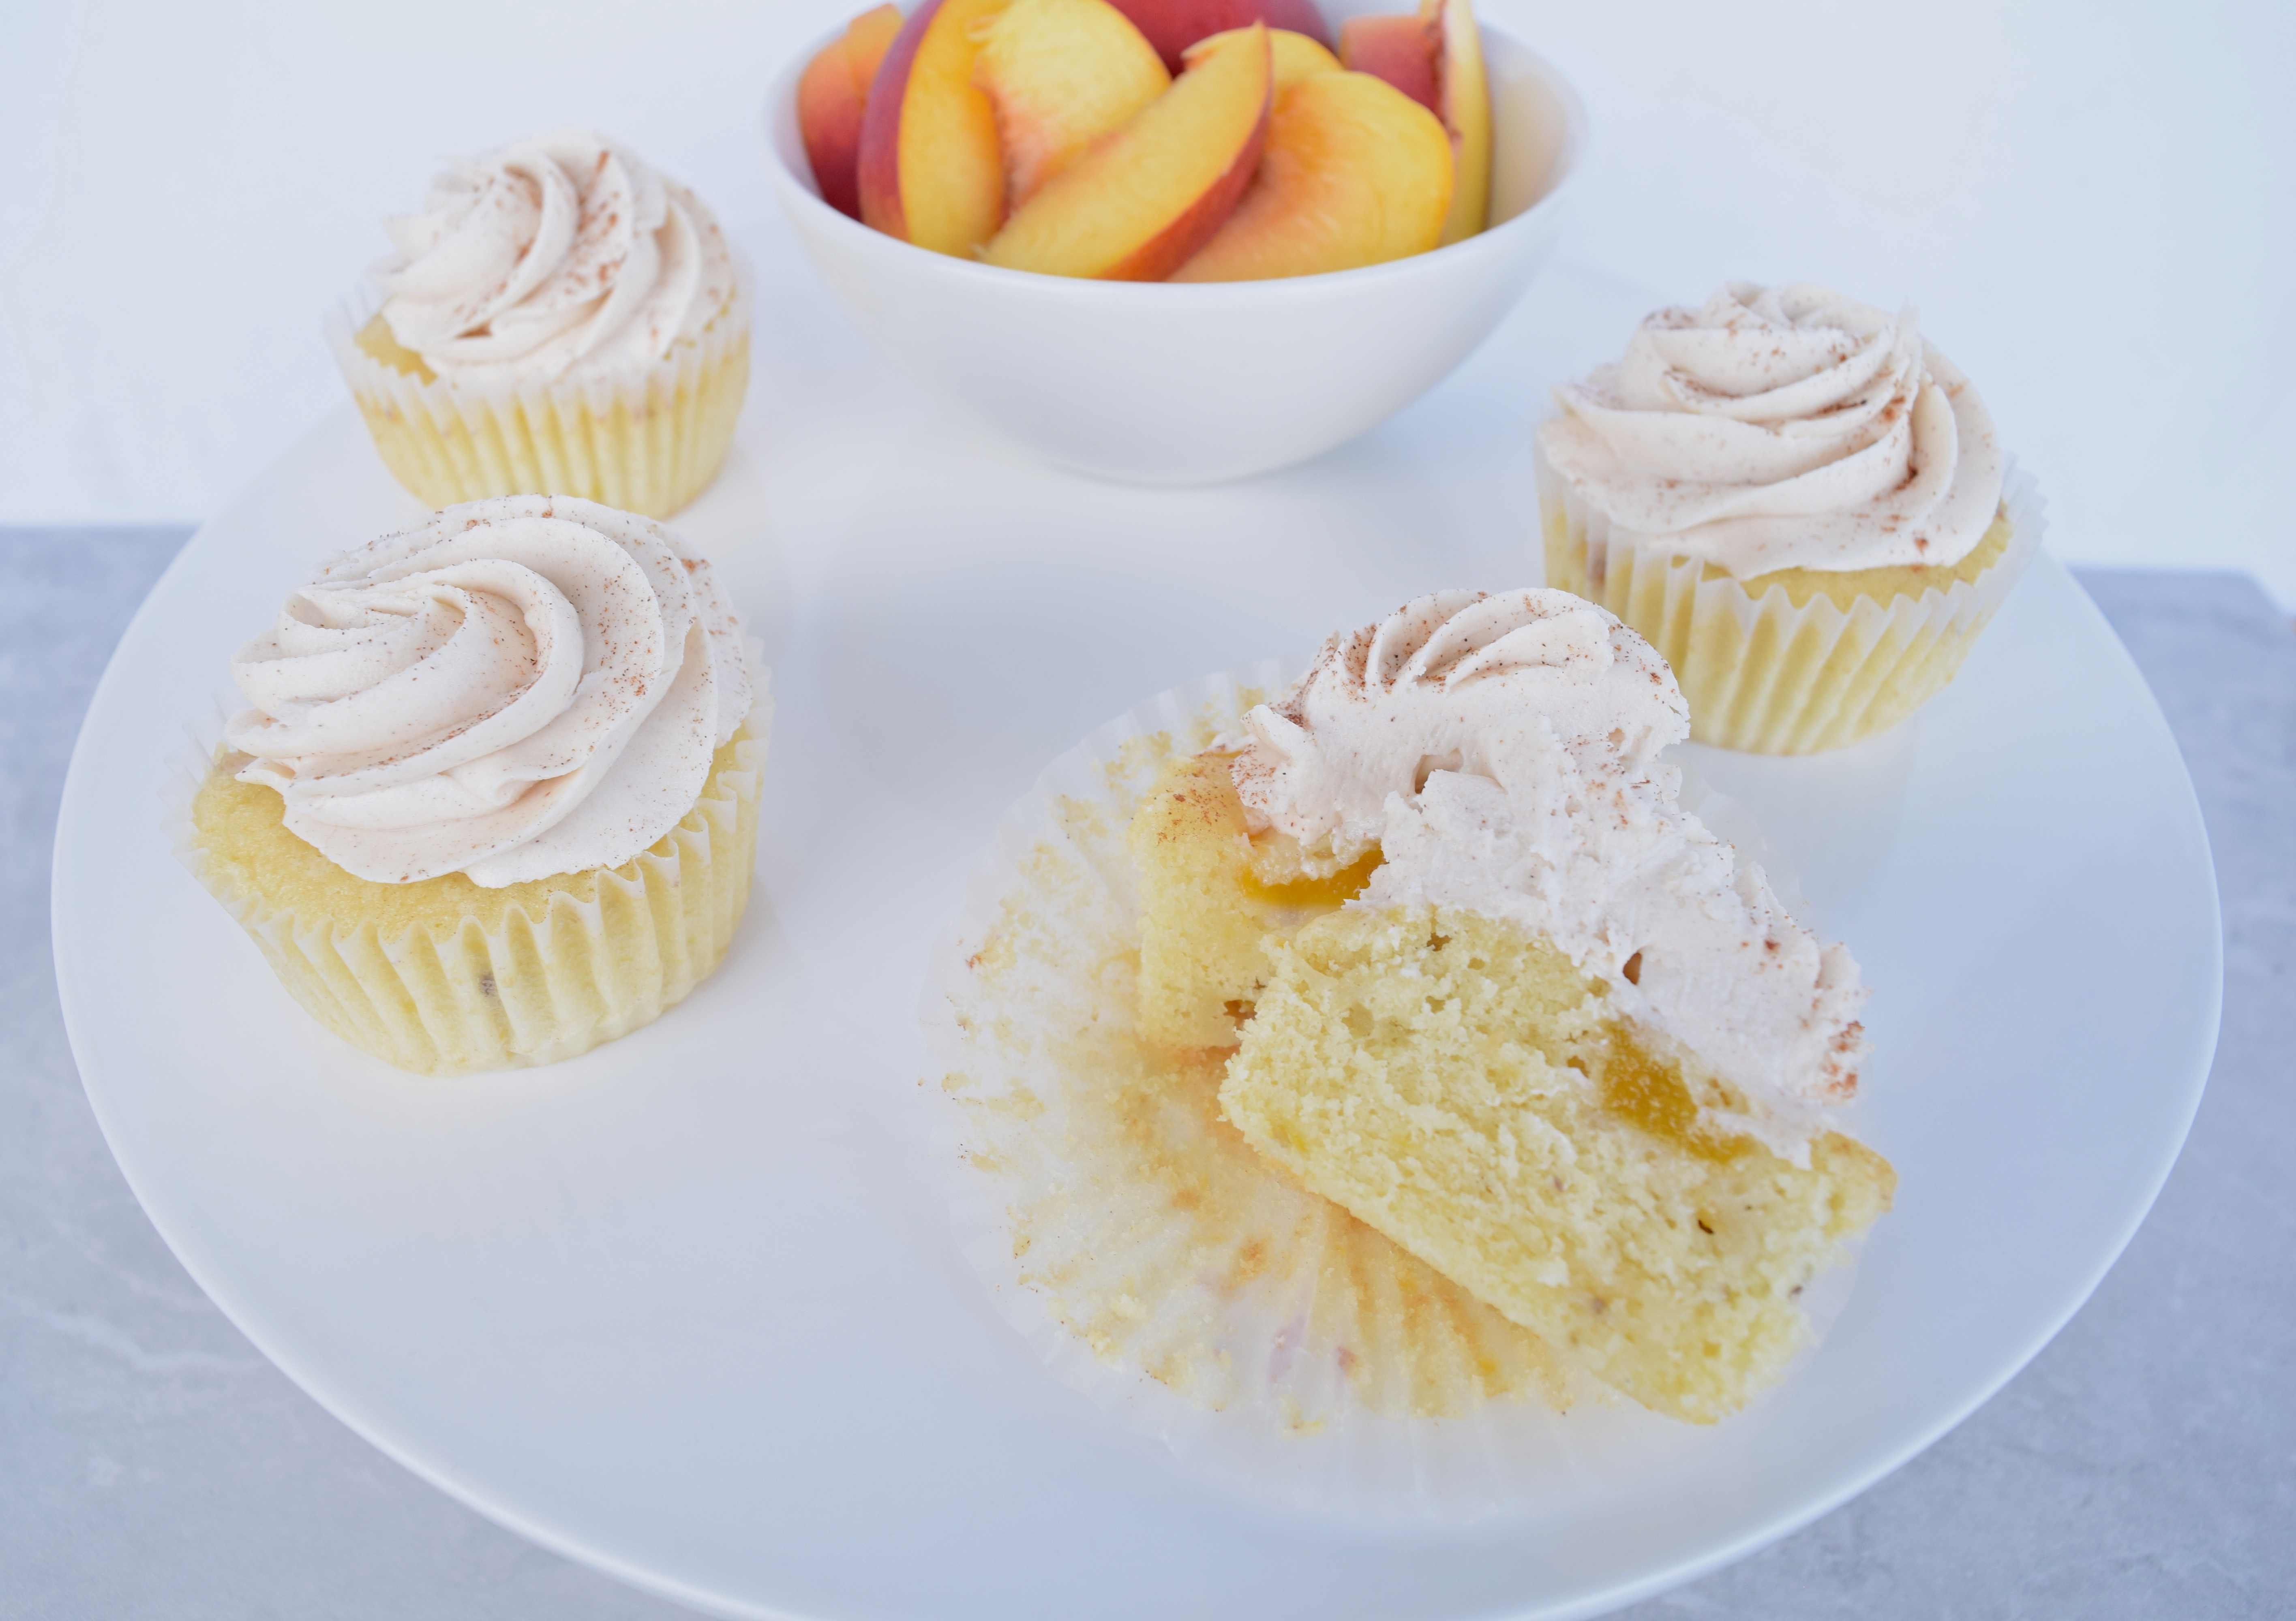 Peach cupcakes with spiced frosting